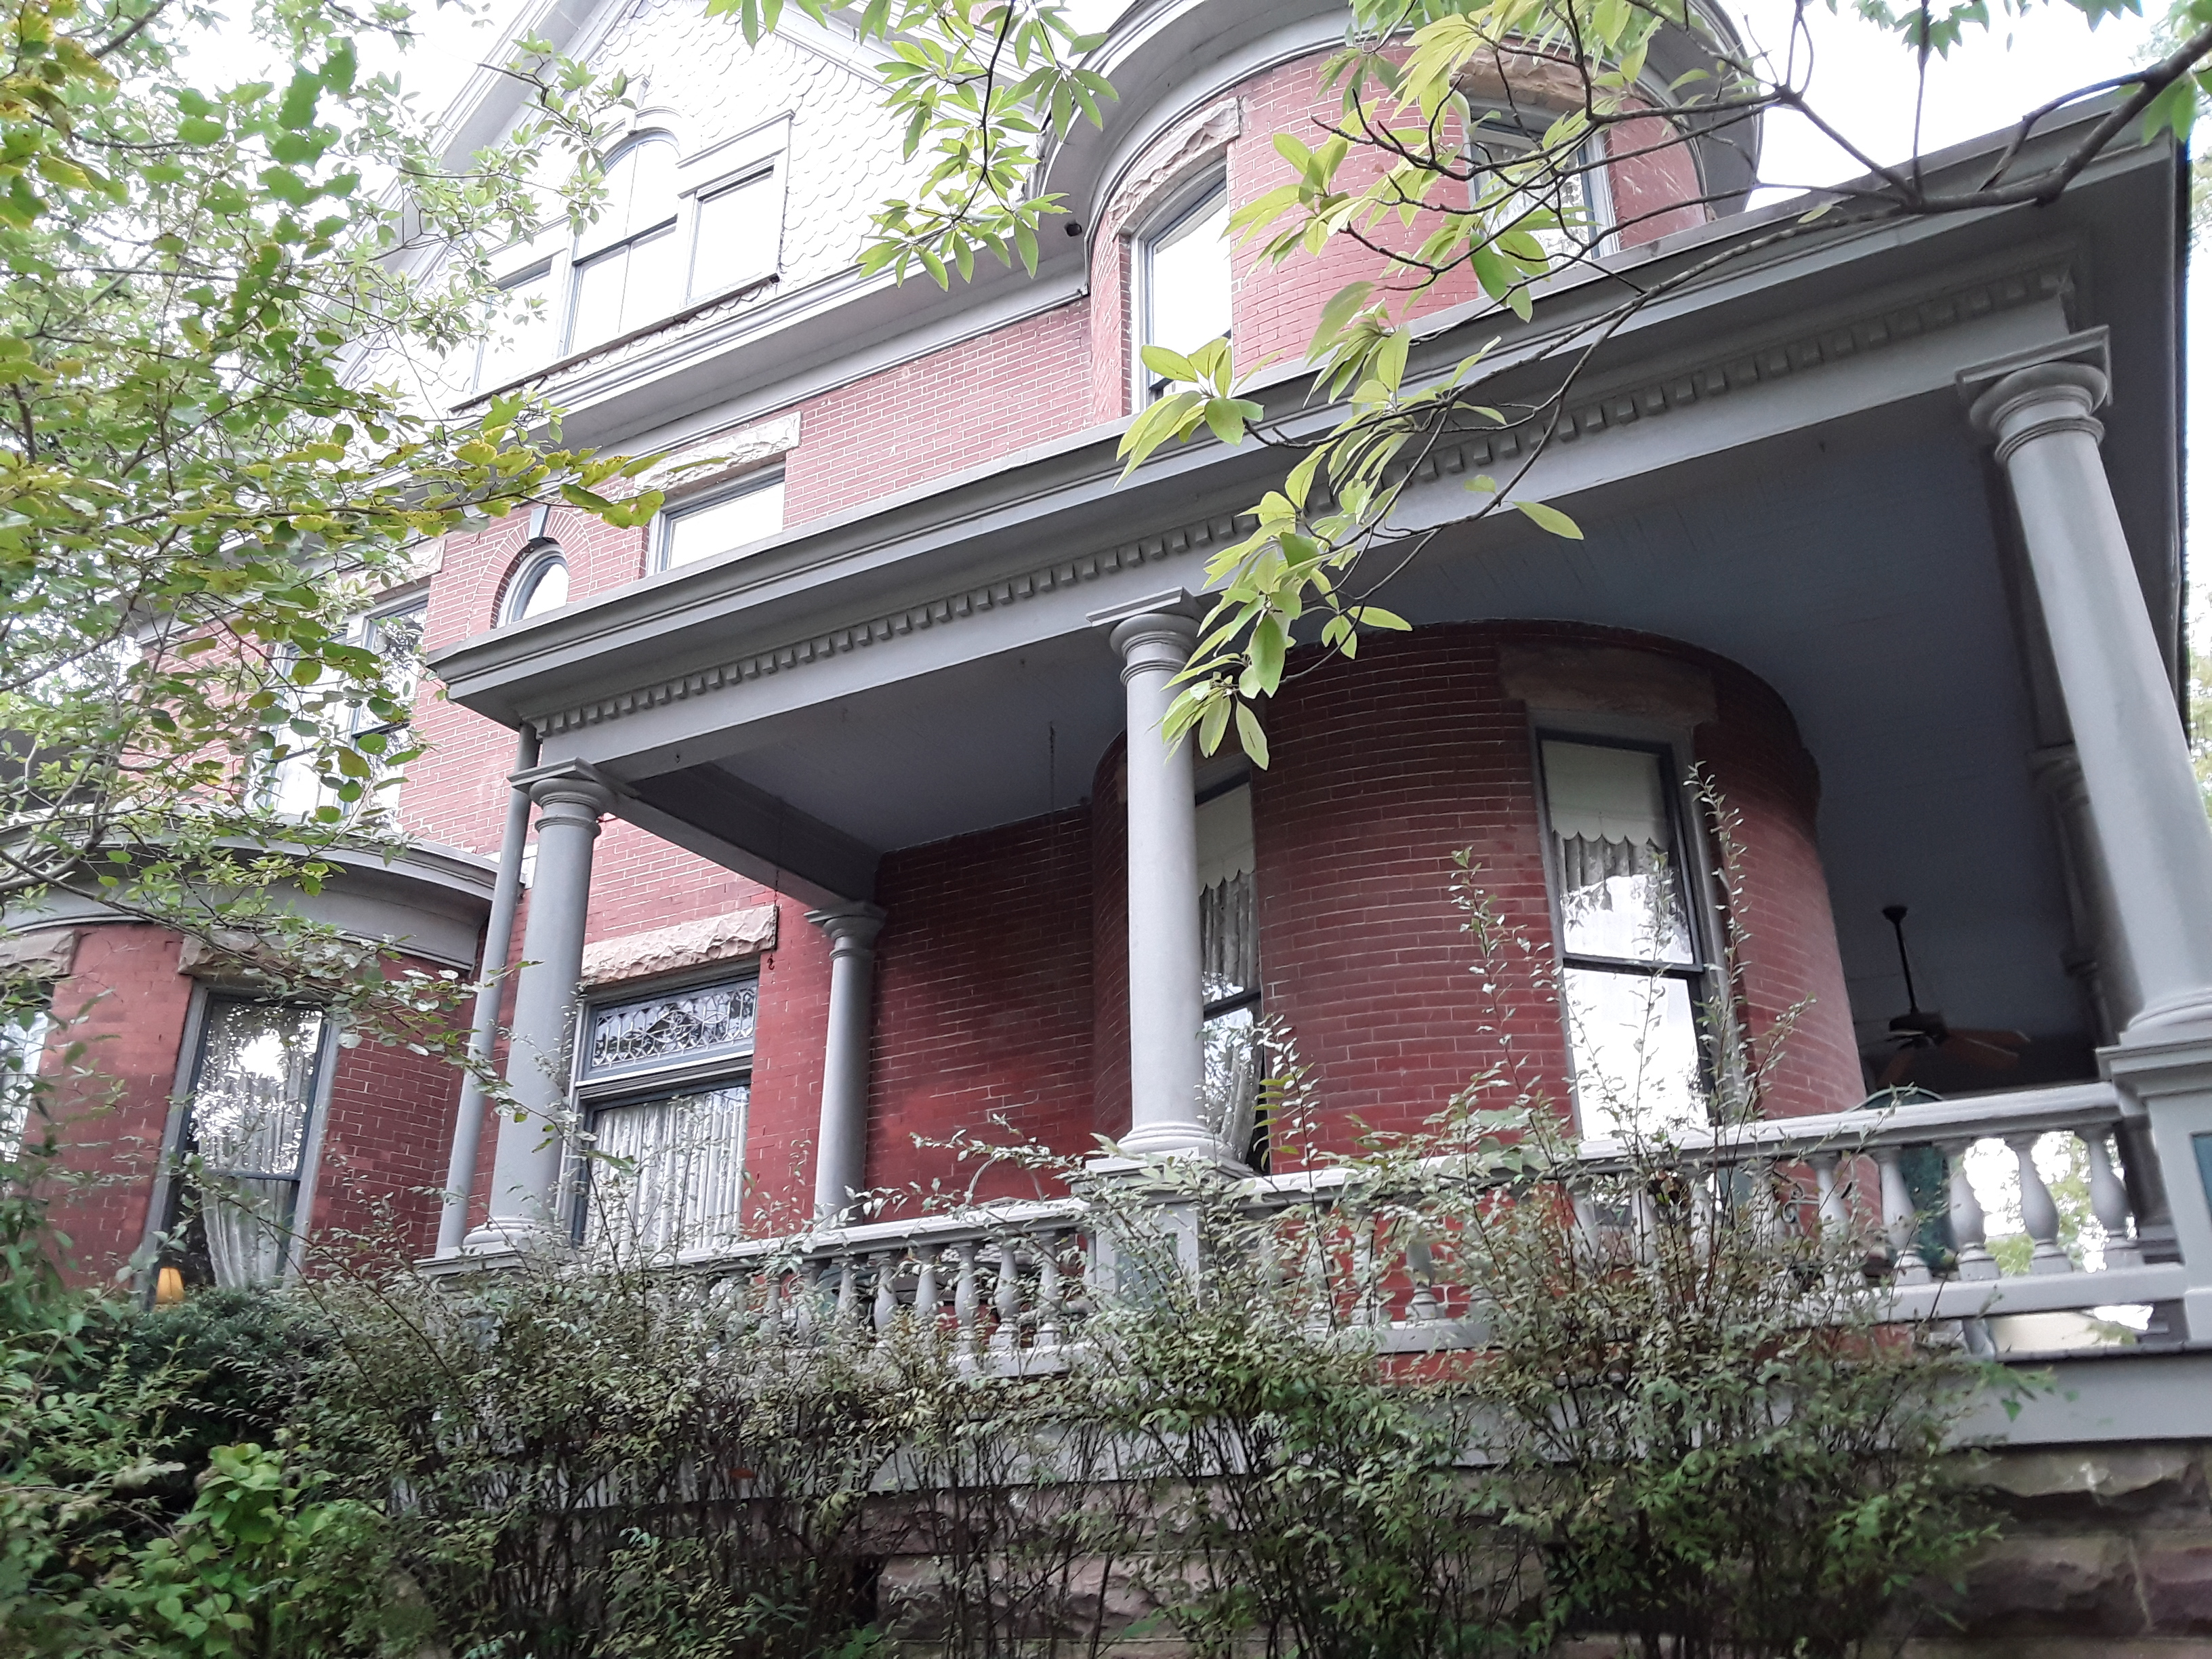 Dunklin House, side porch showing bay window